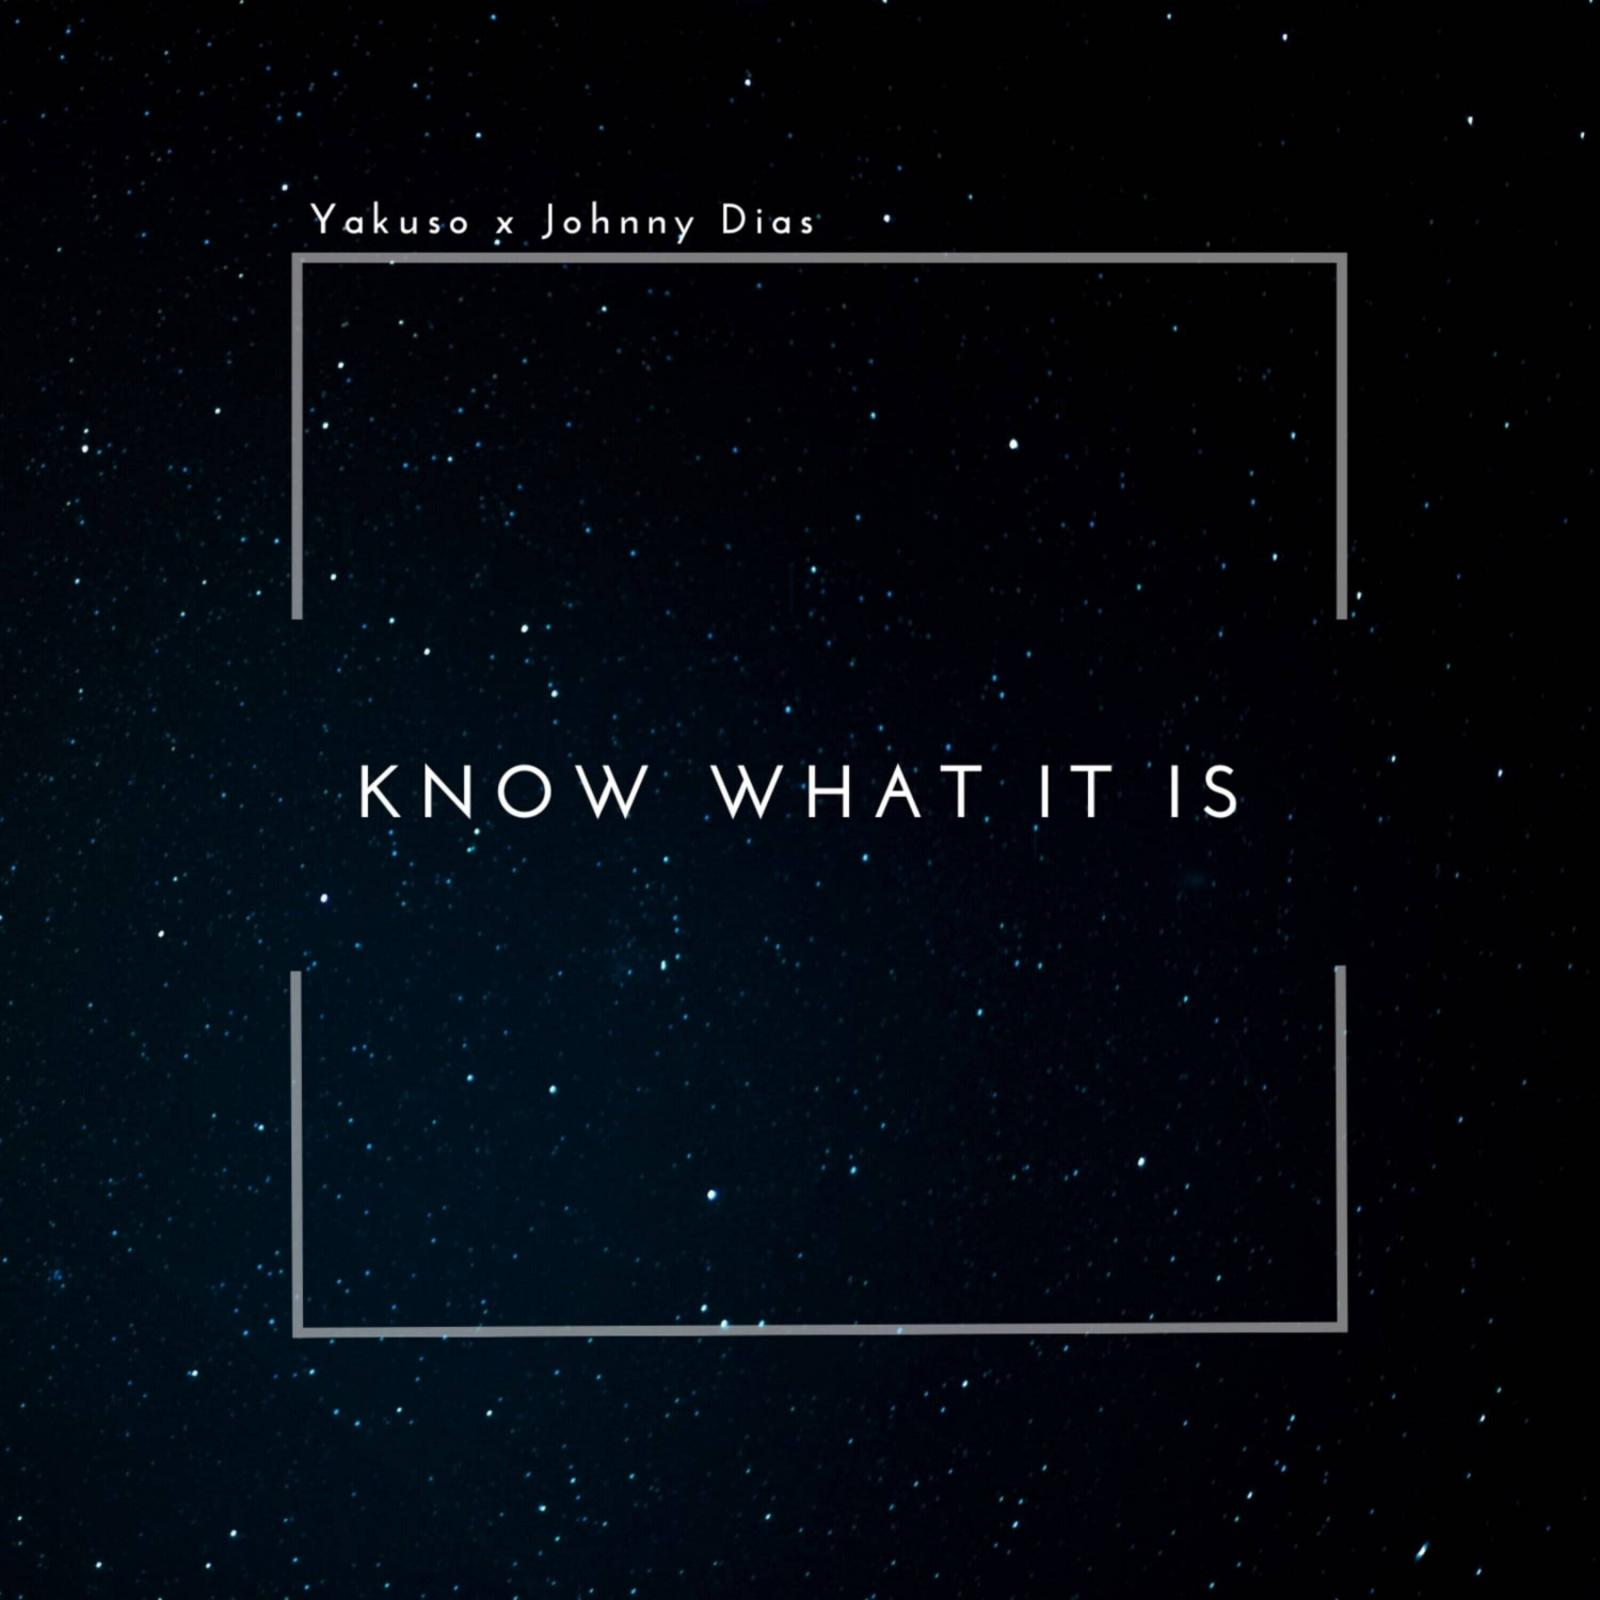 Upcoming: Yakuso, Johnny Dias - Know What It Is